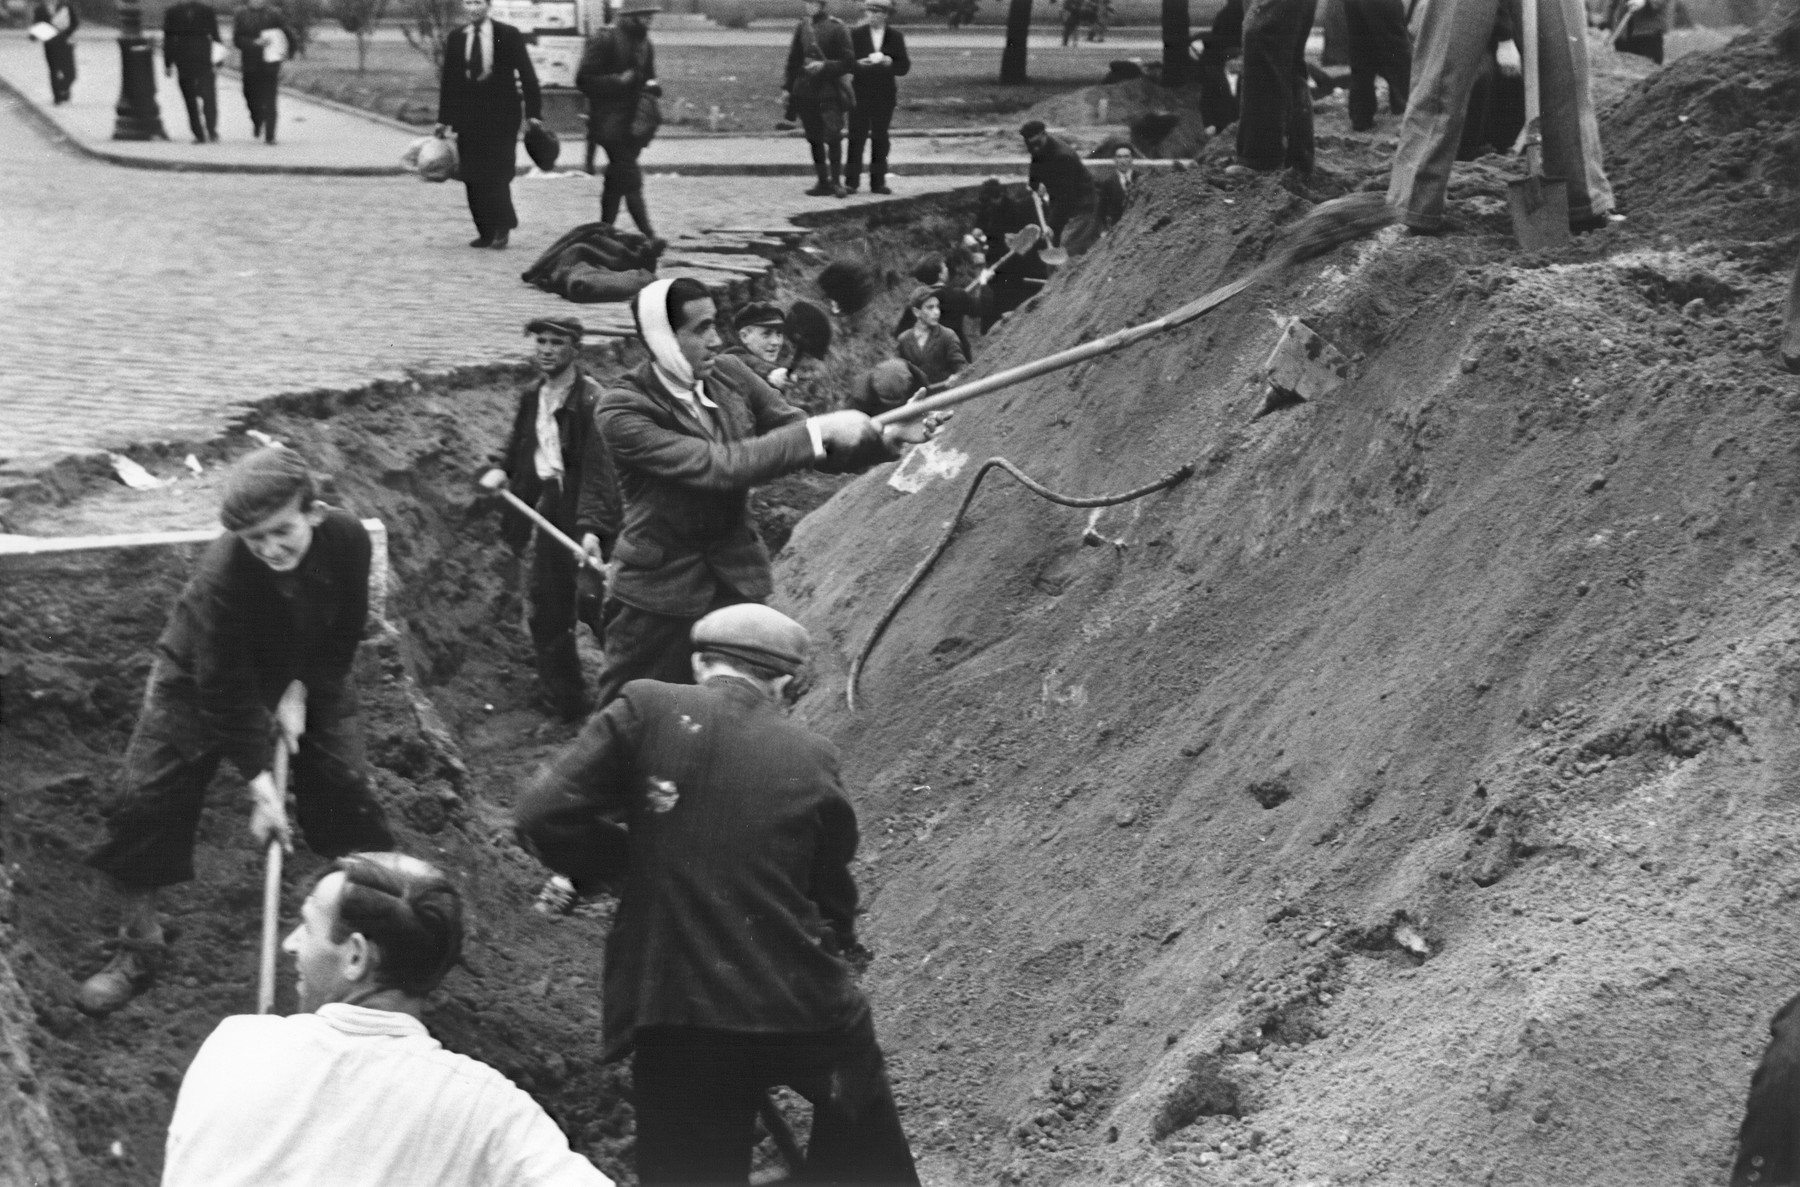 Polish civilians dig an anti-tank trench and plant street car rails in the ground on a street in Warsaw to slow the advance of the German army.